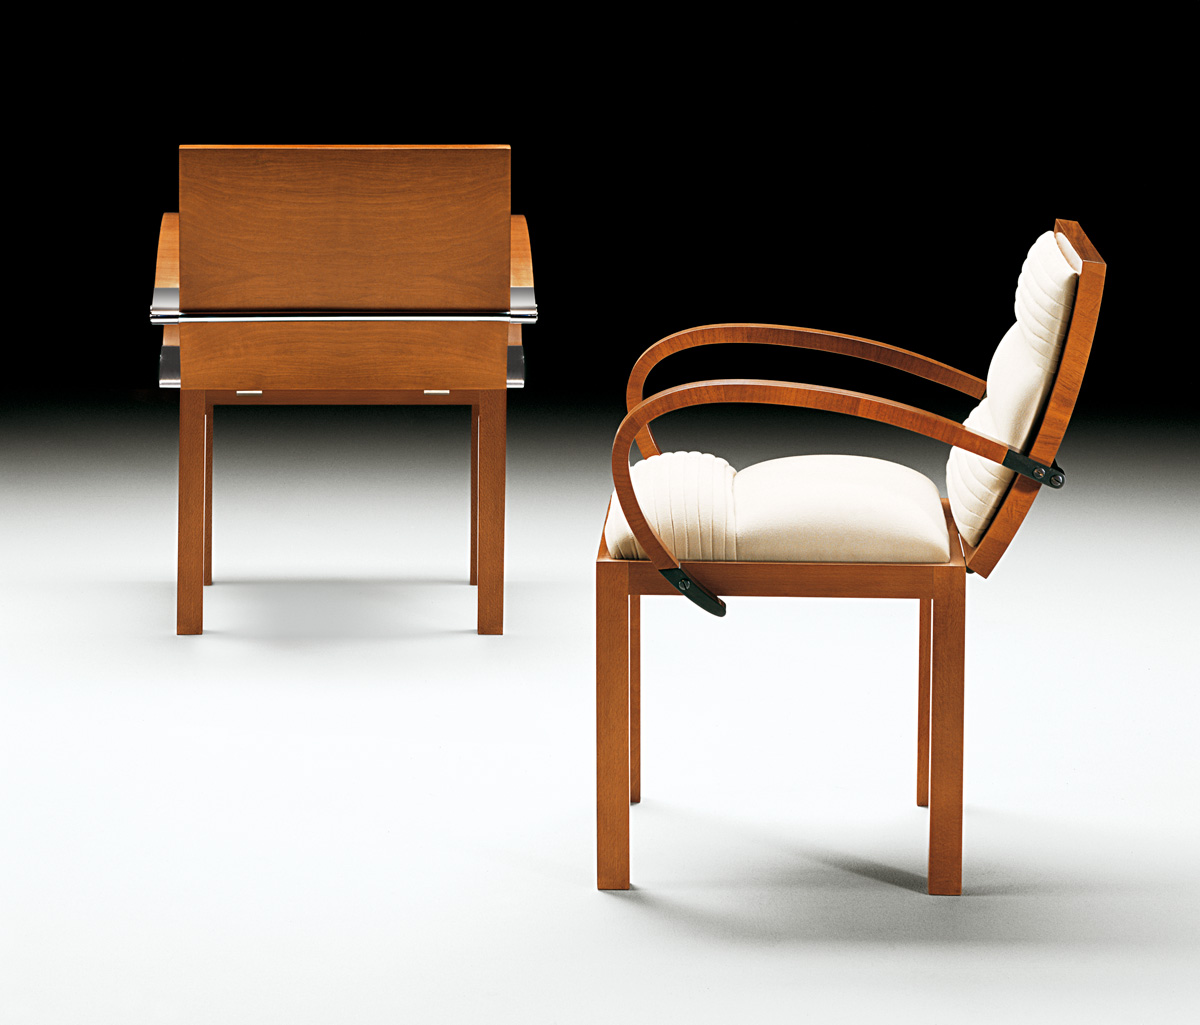 Awesome Casablanca Tresserra Caraccident5 Cool Chair Designs And Ideas Caraccident5Info